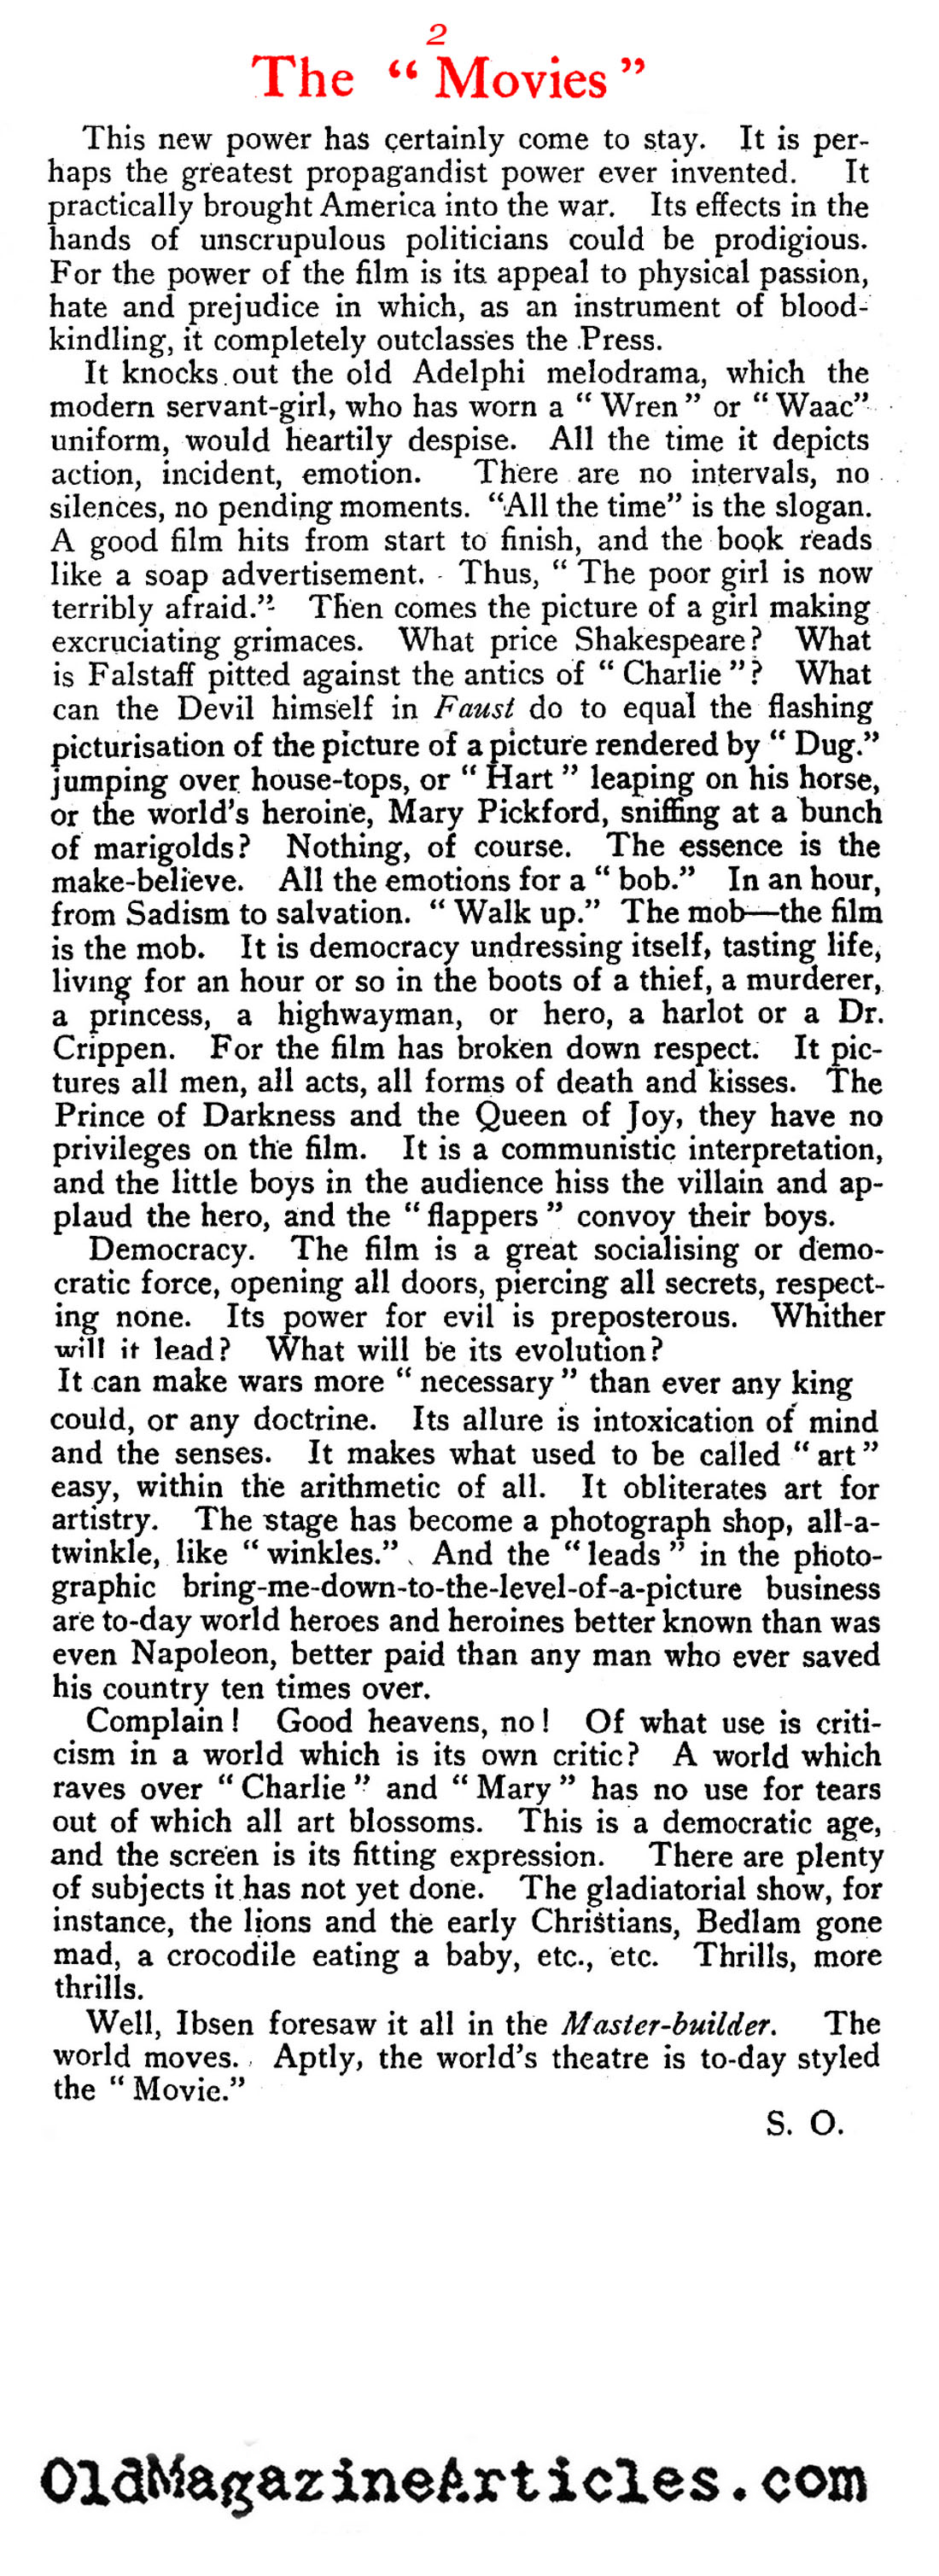 More Nasty Criticism About Silent Films (English Review, 1922)